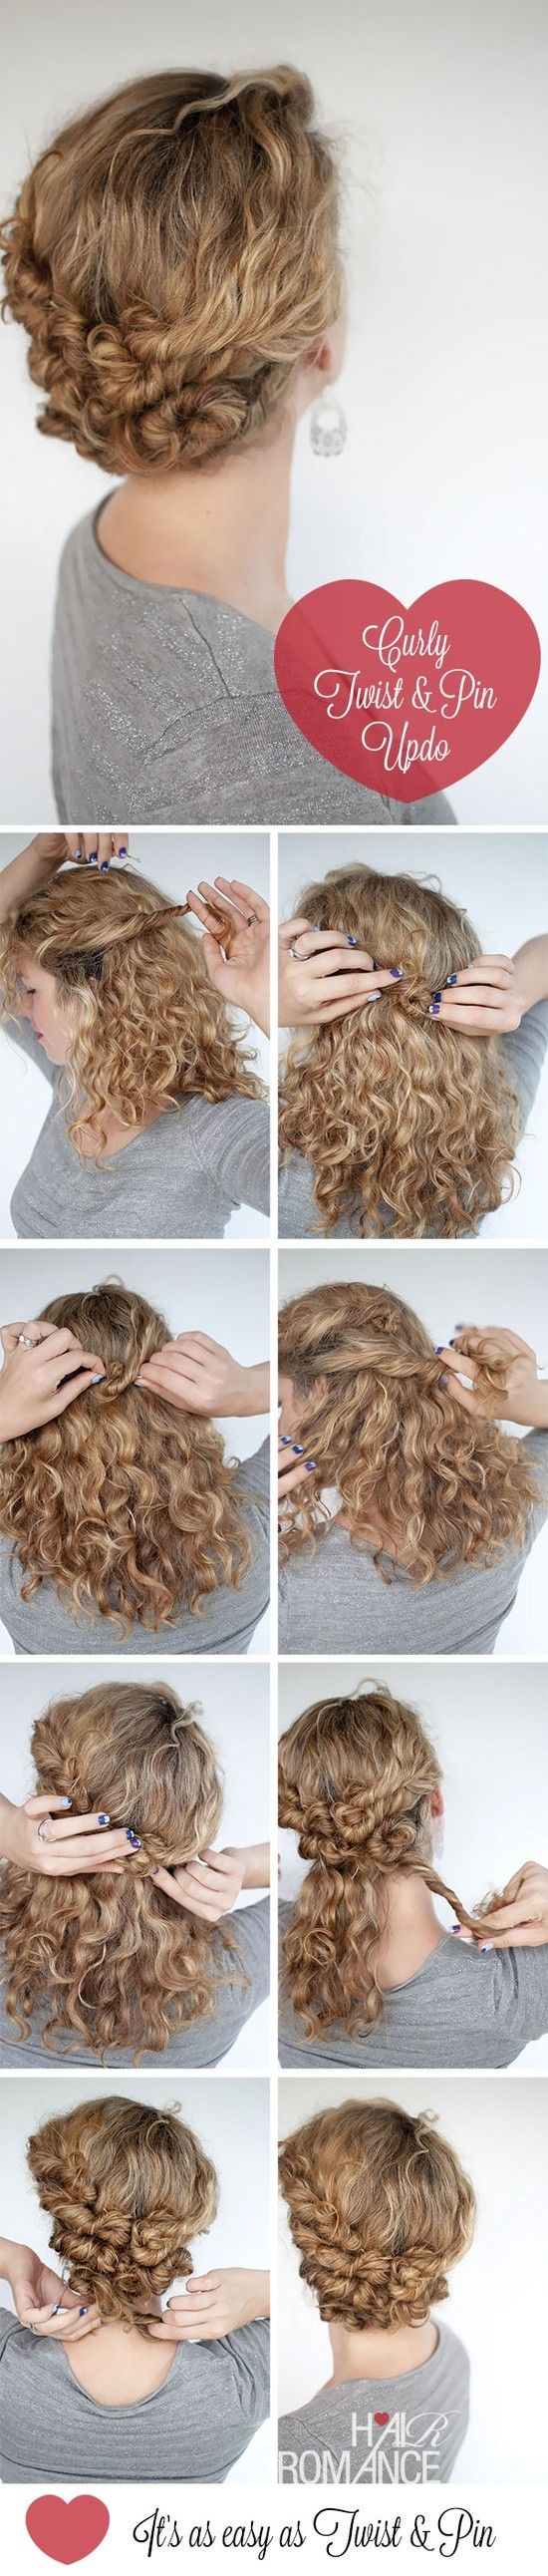 Second Day Curly Hairstyles 25 Best Ideas About Curly Hair Up On Pinterest Curly Hair Updo